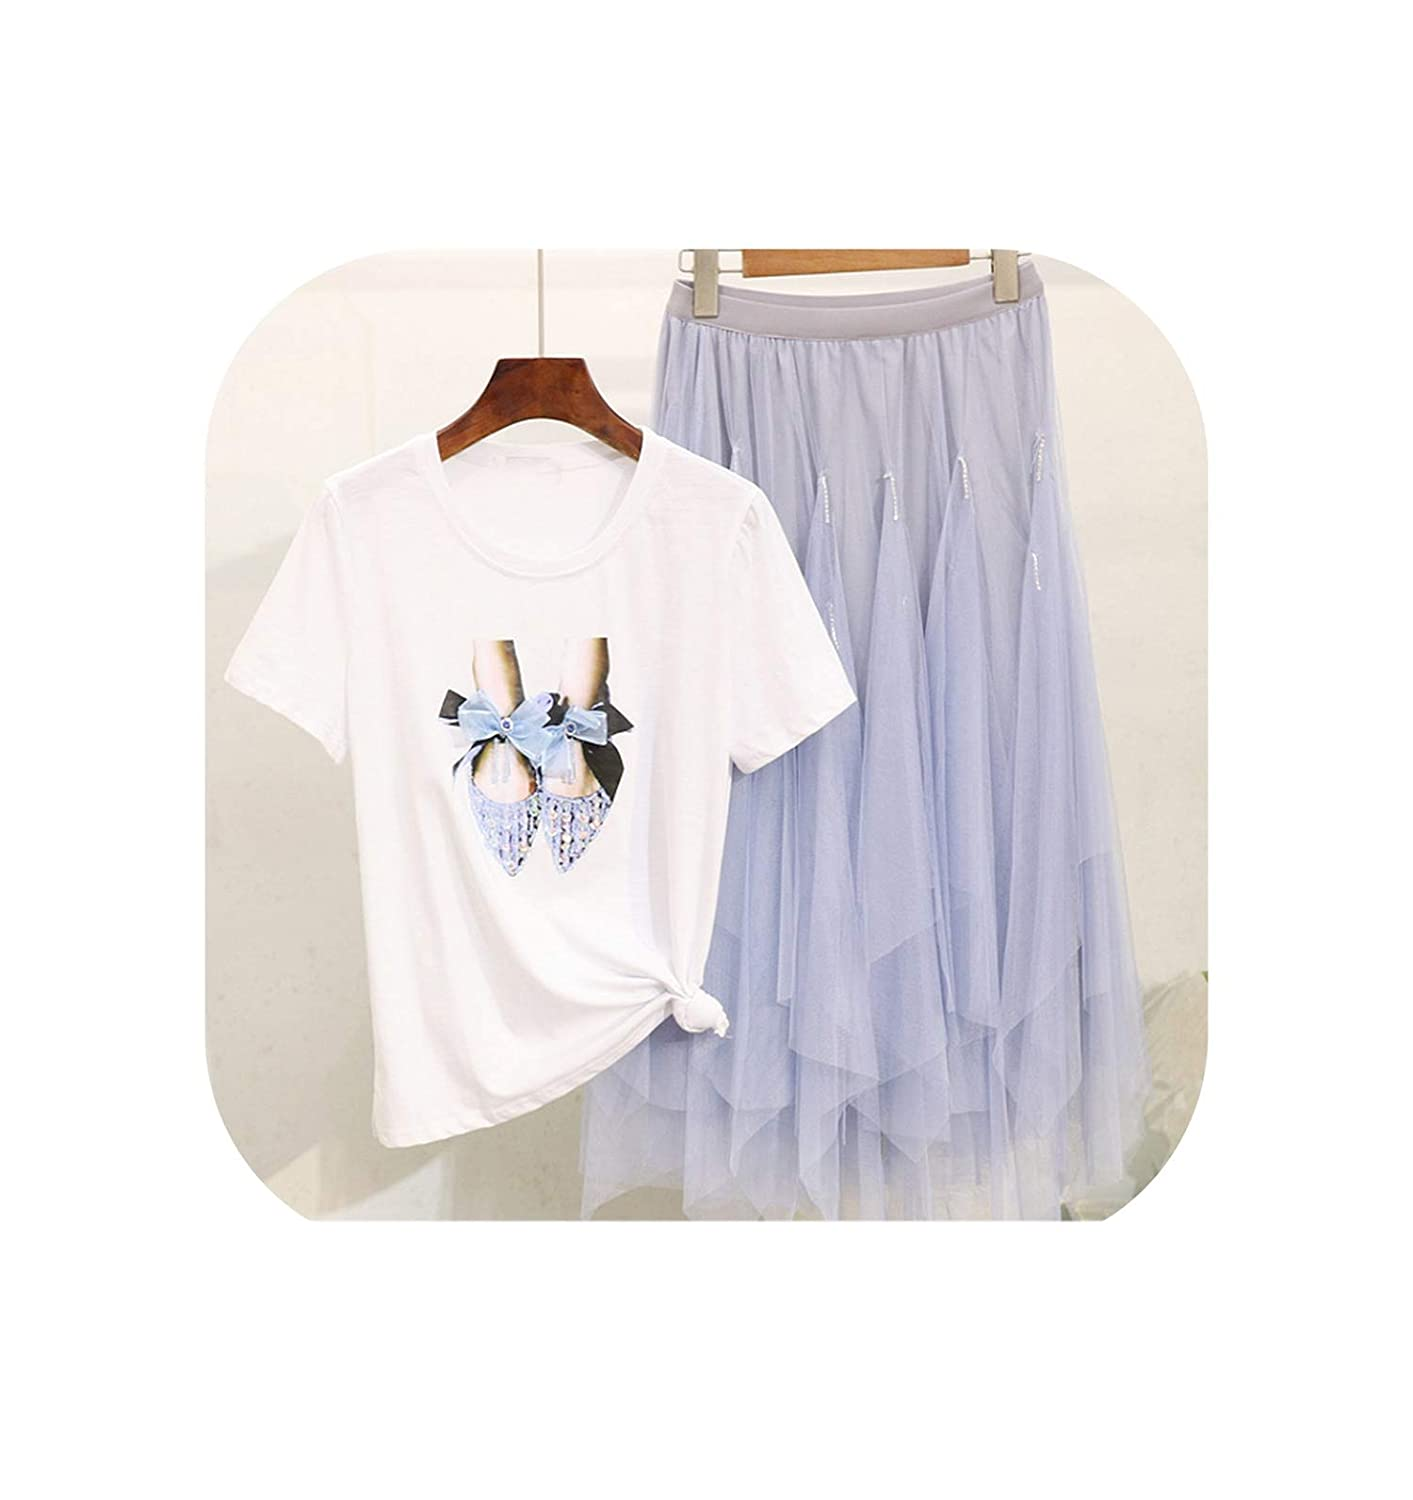 bluee shoes Cute Emma Female New Pearl Bear Printed Short Sleeve TShirt + Mesh Skirt Fashion Two Piece Suit Female Student